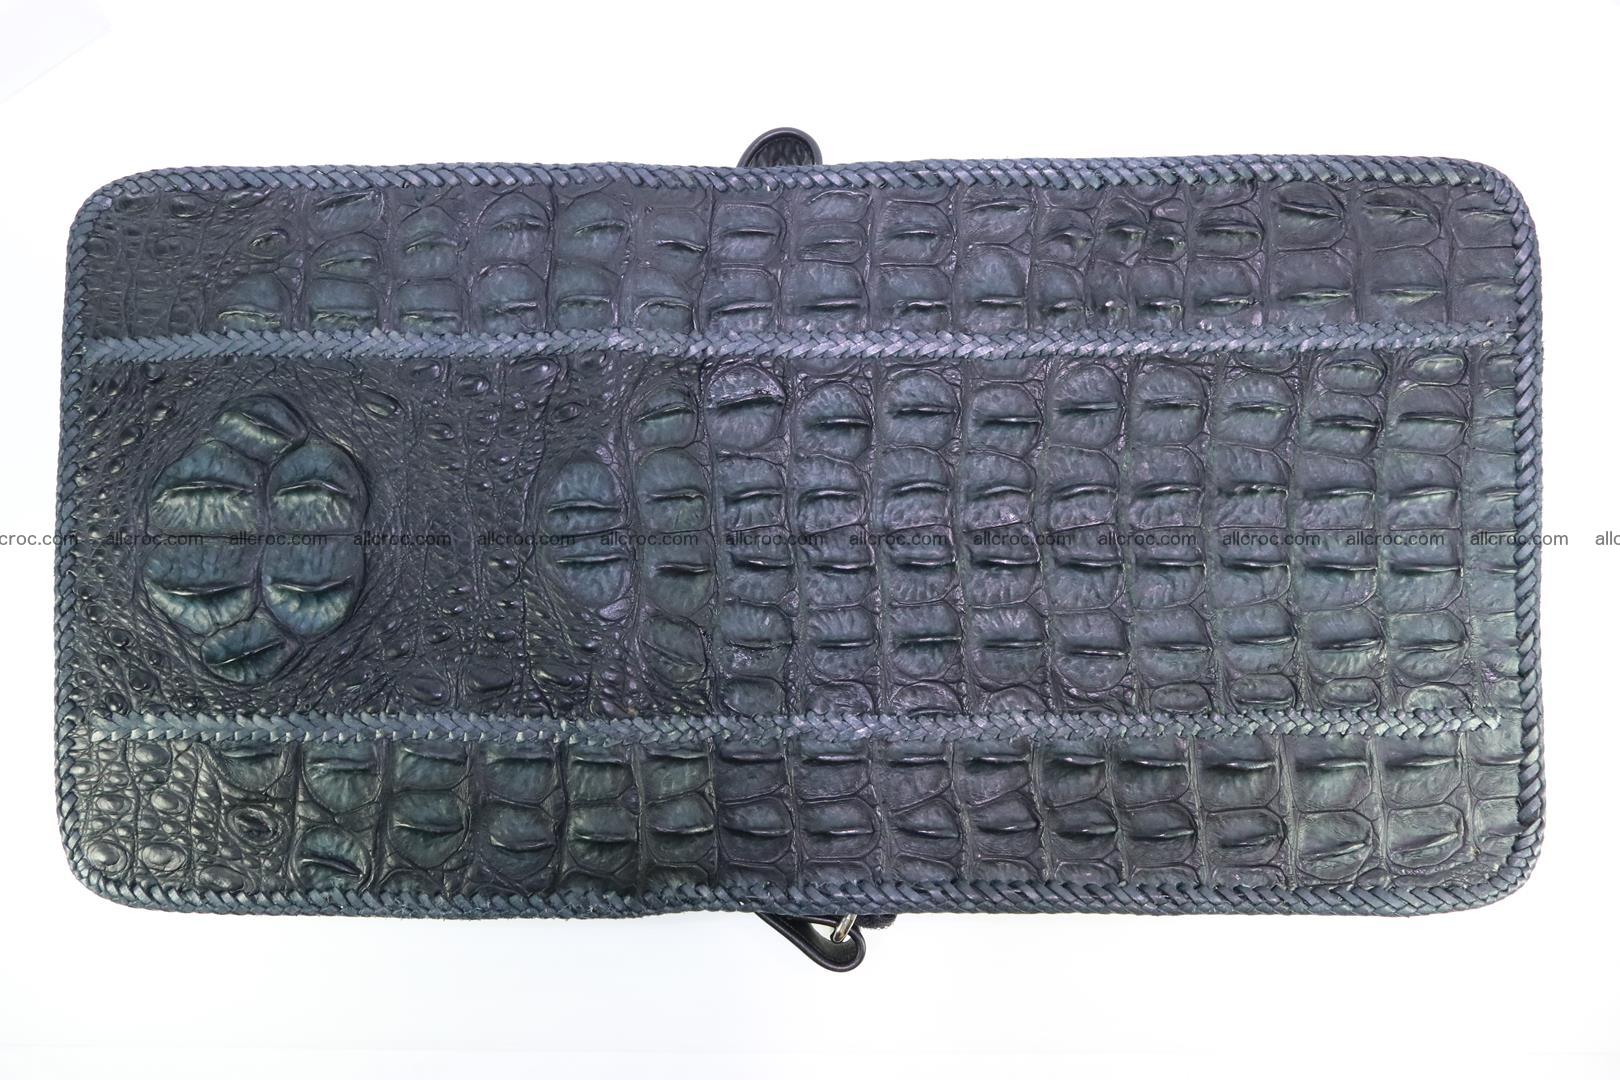 Сrocodile skin shoulder bag with braided edges 143 Foto 12